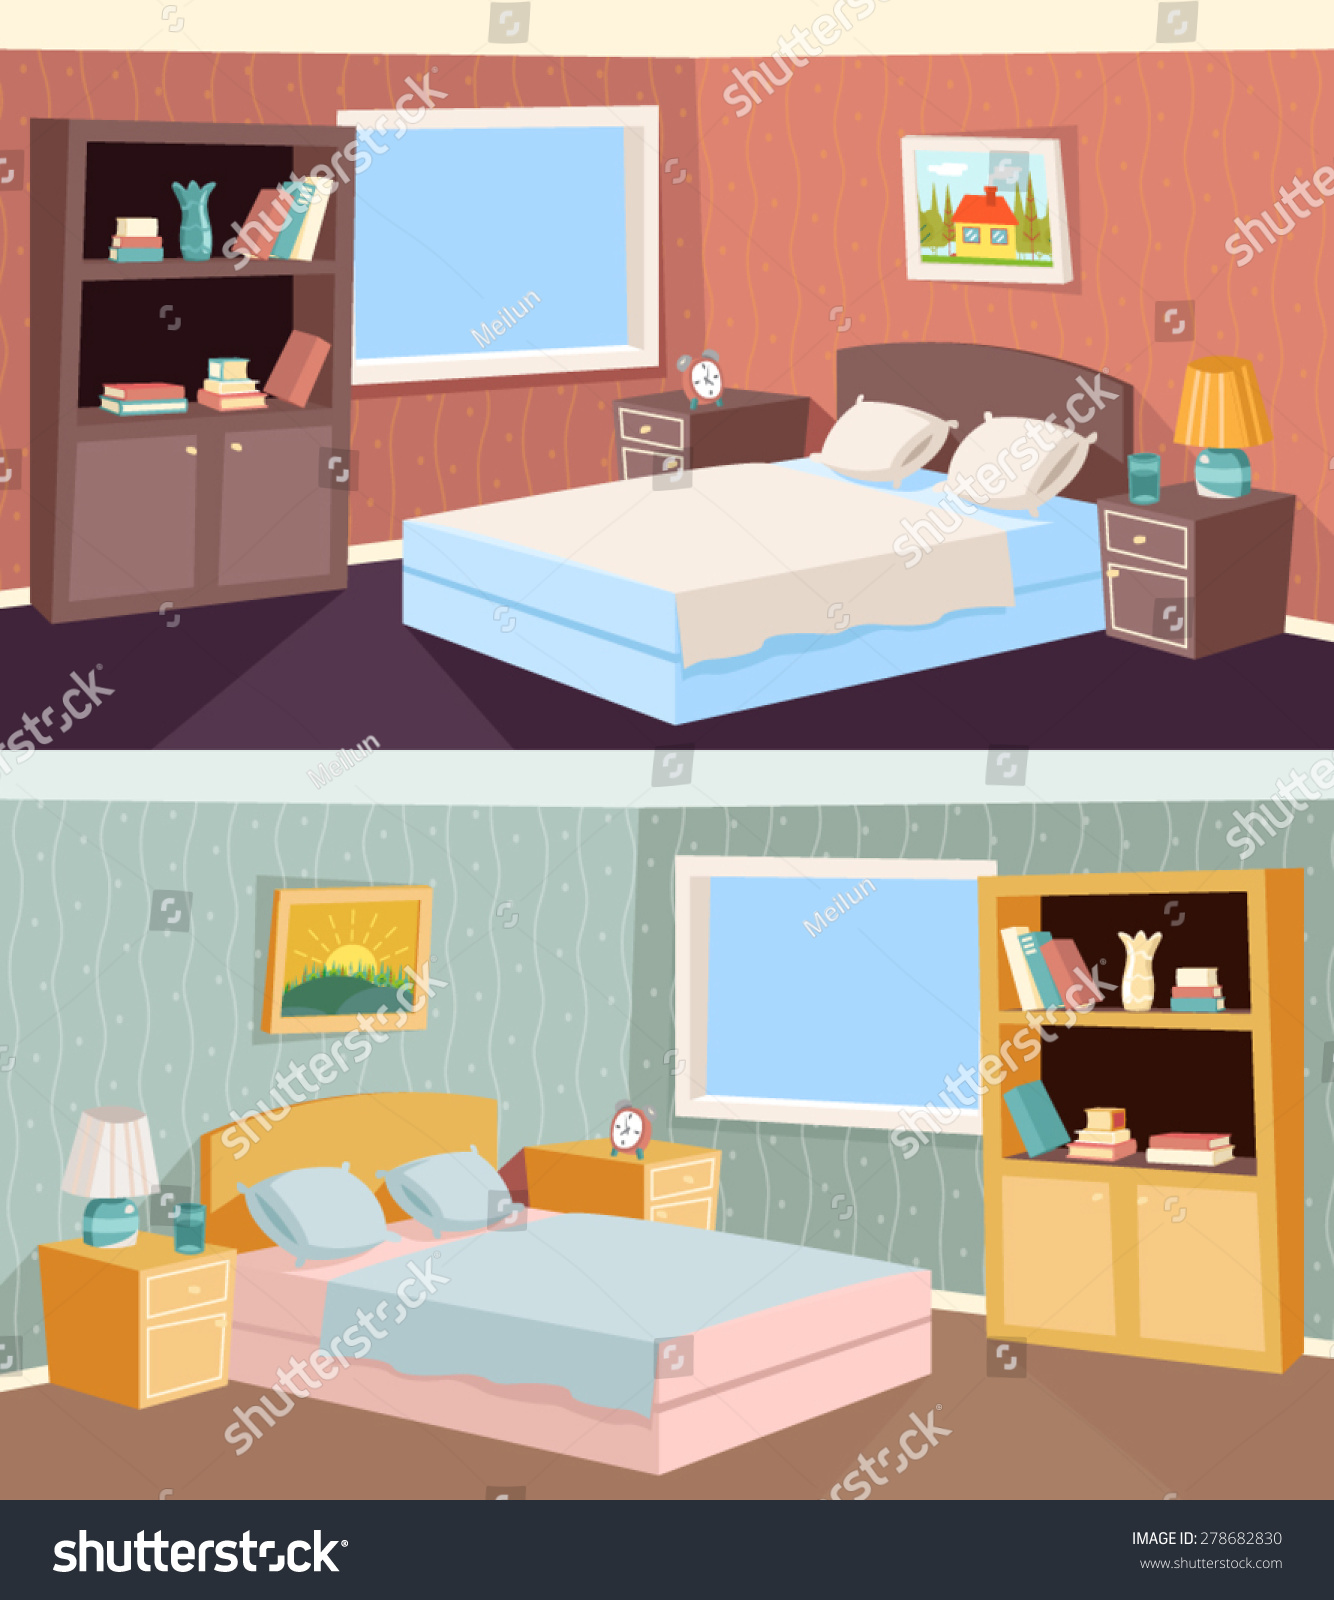 cartoon bedroom apartment living room interior house room retro